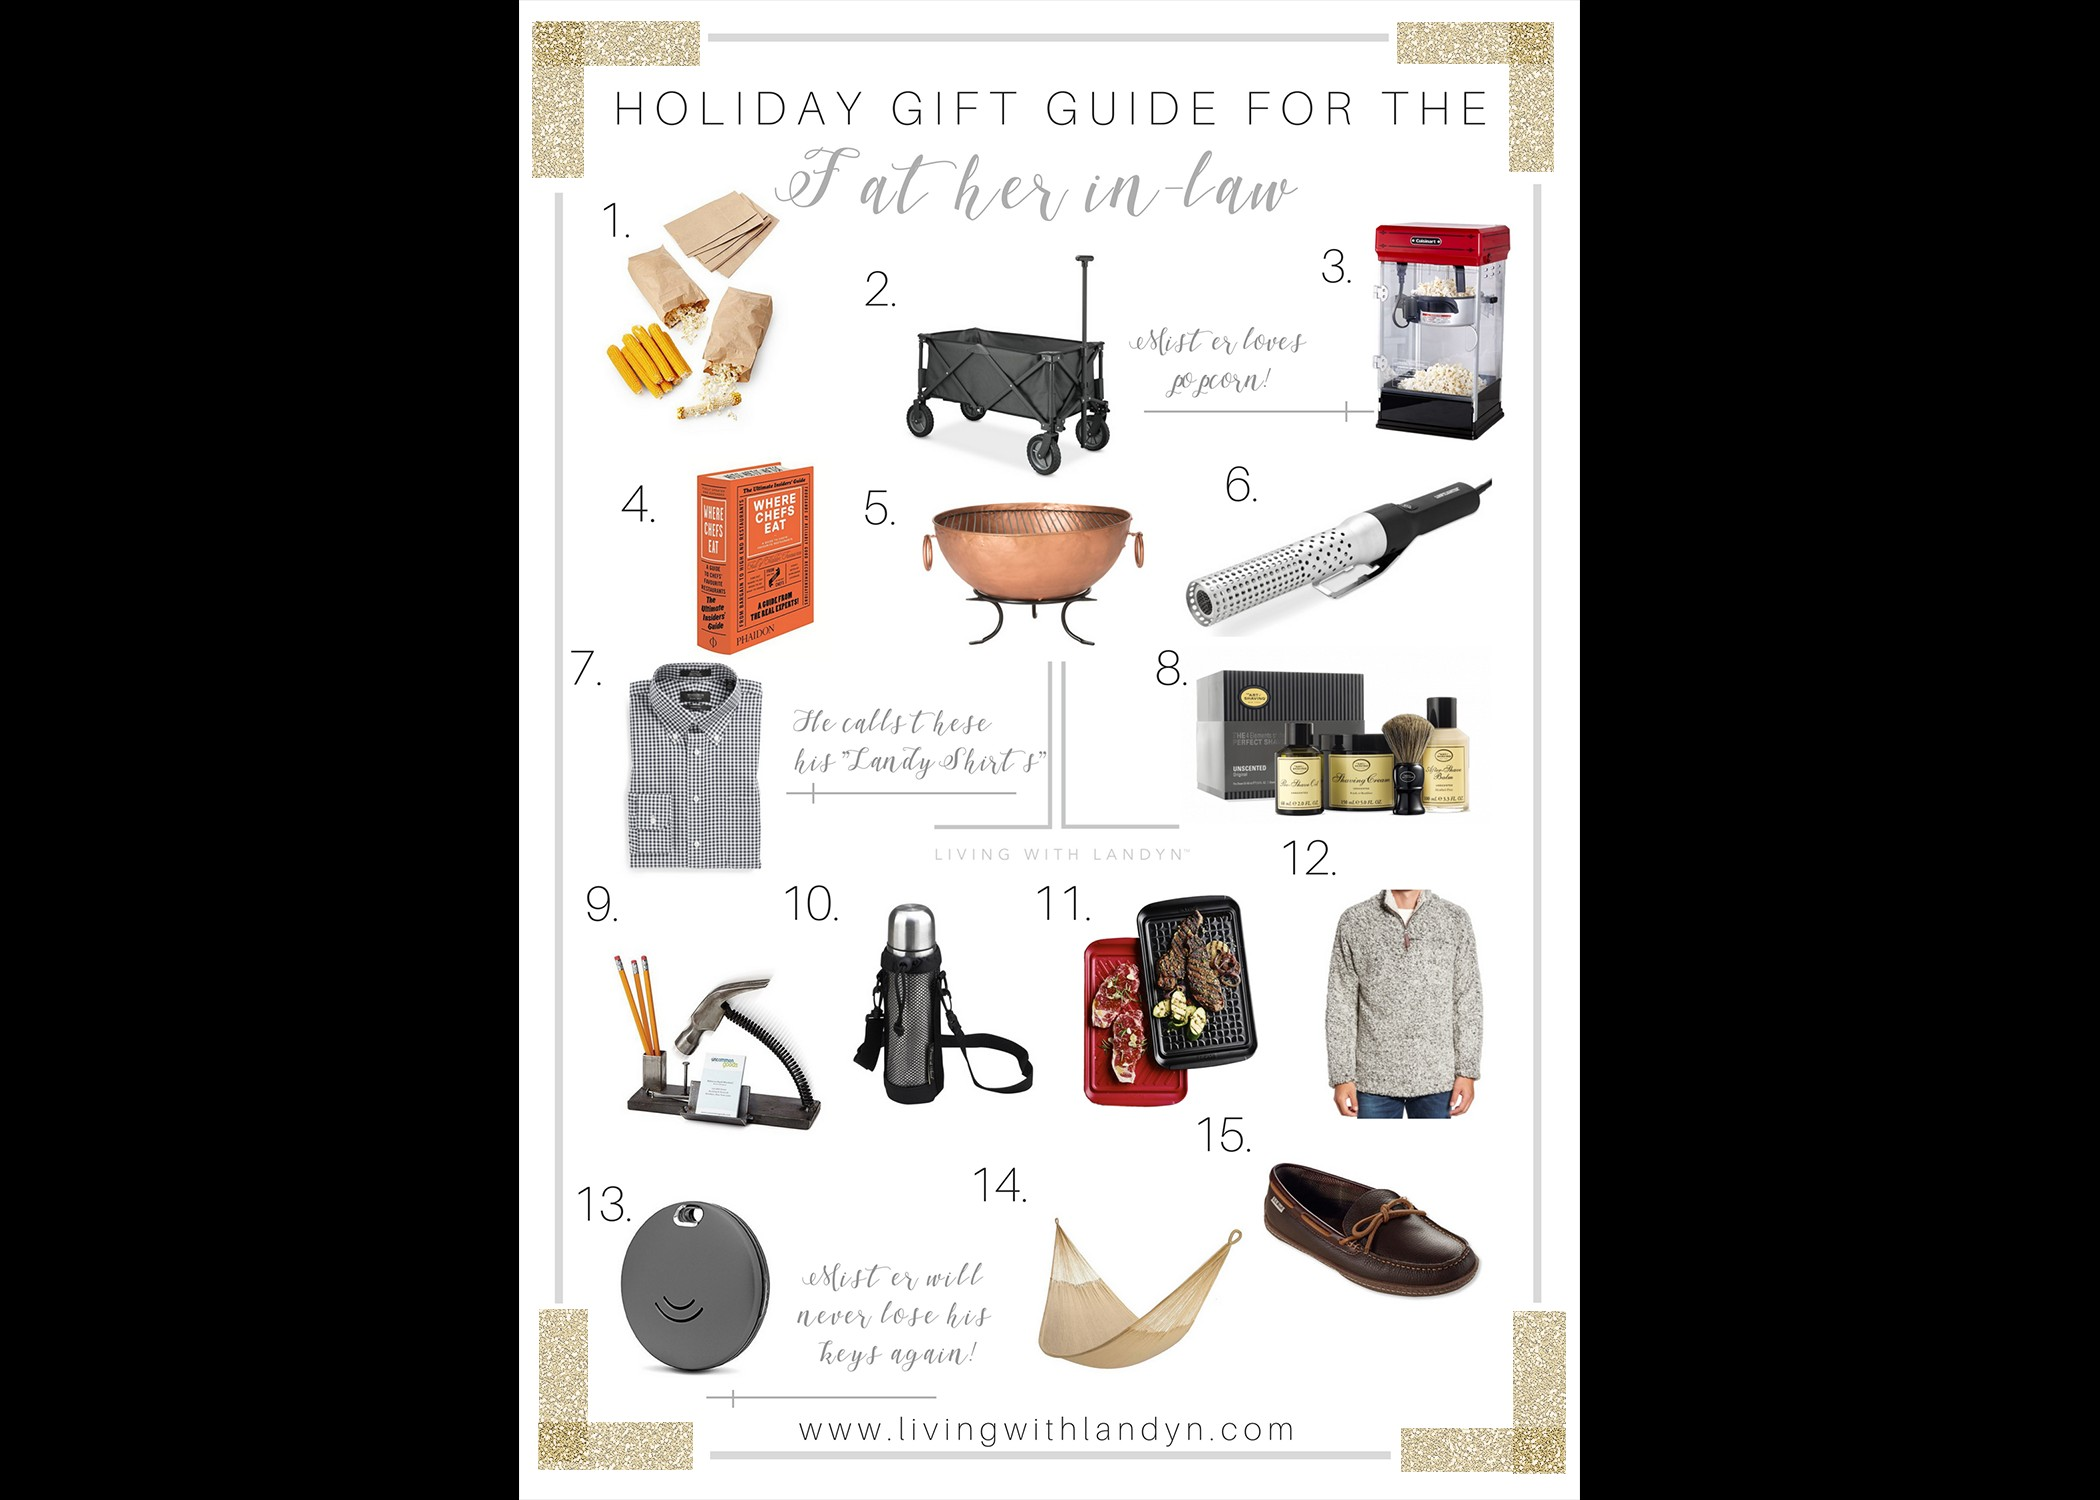 GIFT GUIDE FOR YOUR FATHER-IN-LAW — Living With Landyn